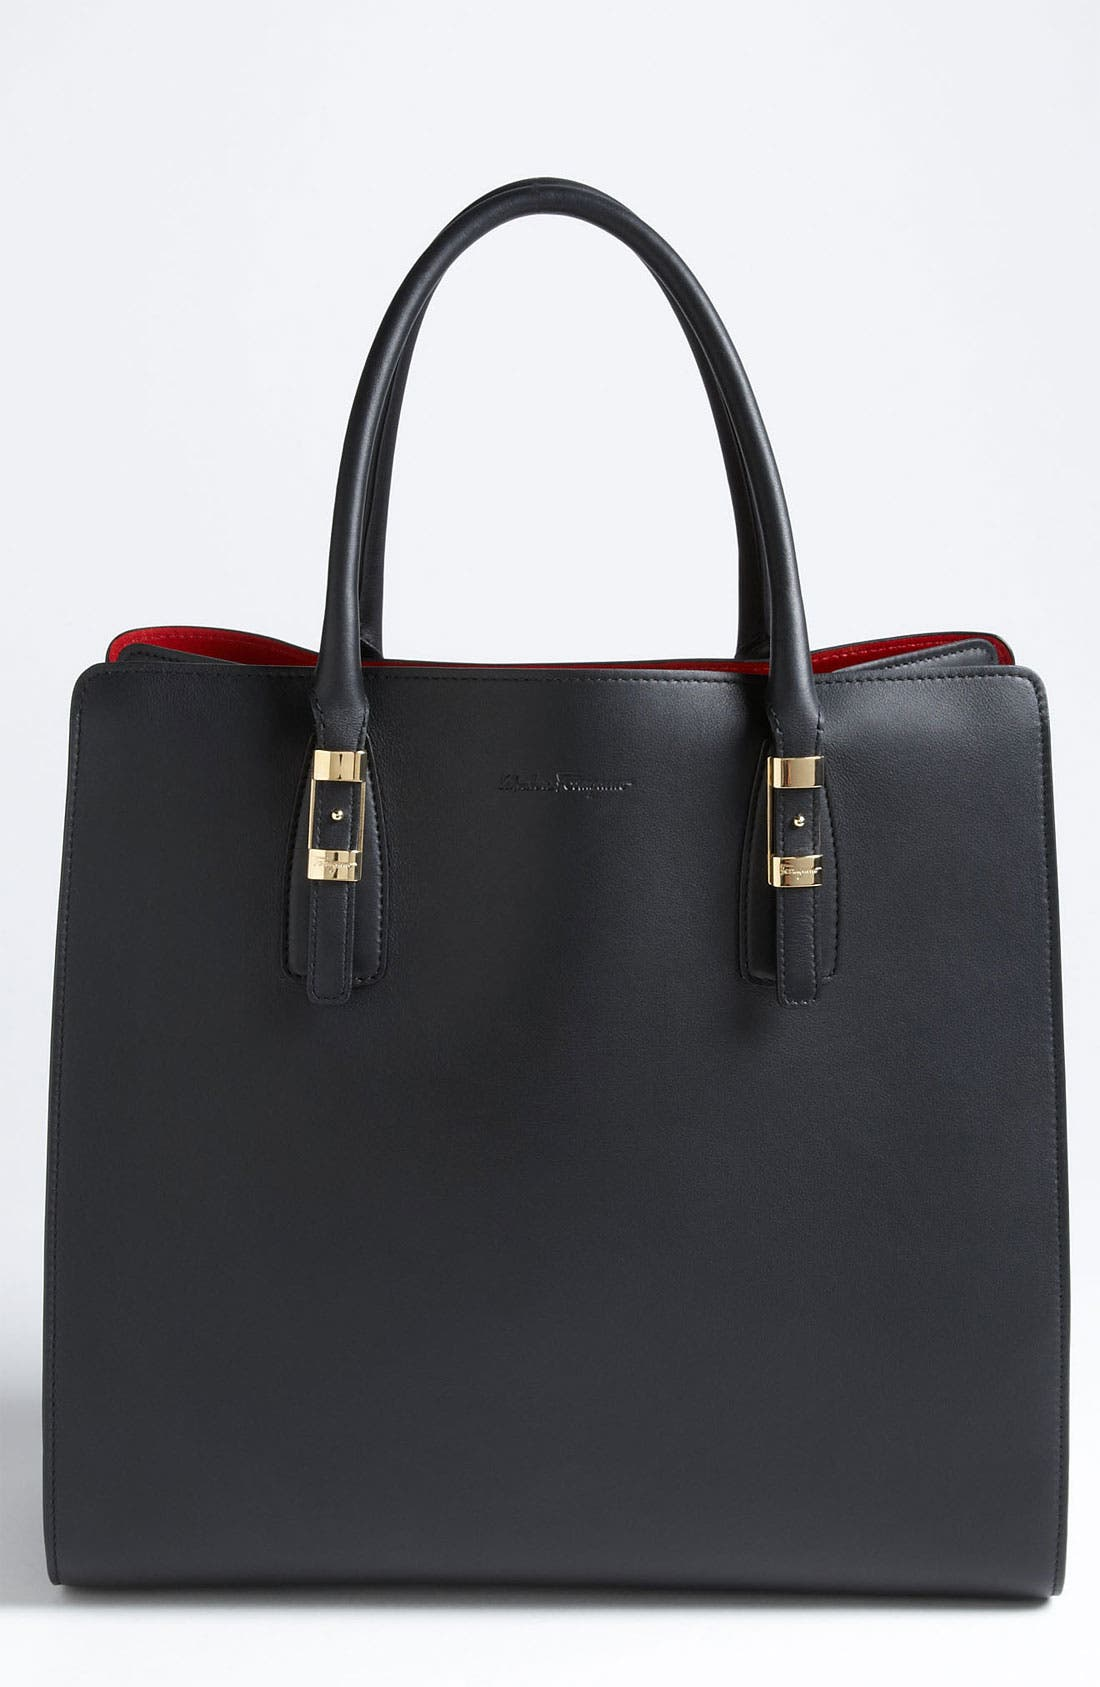 Alternate Image 1 Selected - Salvatore Ferragamo 'Whitney - Small' Leather Satchel